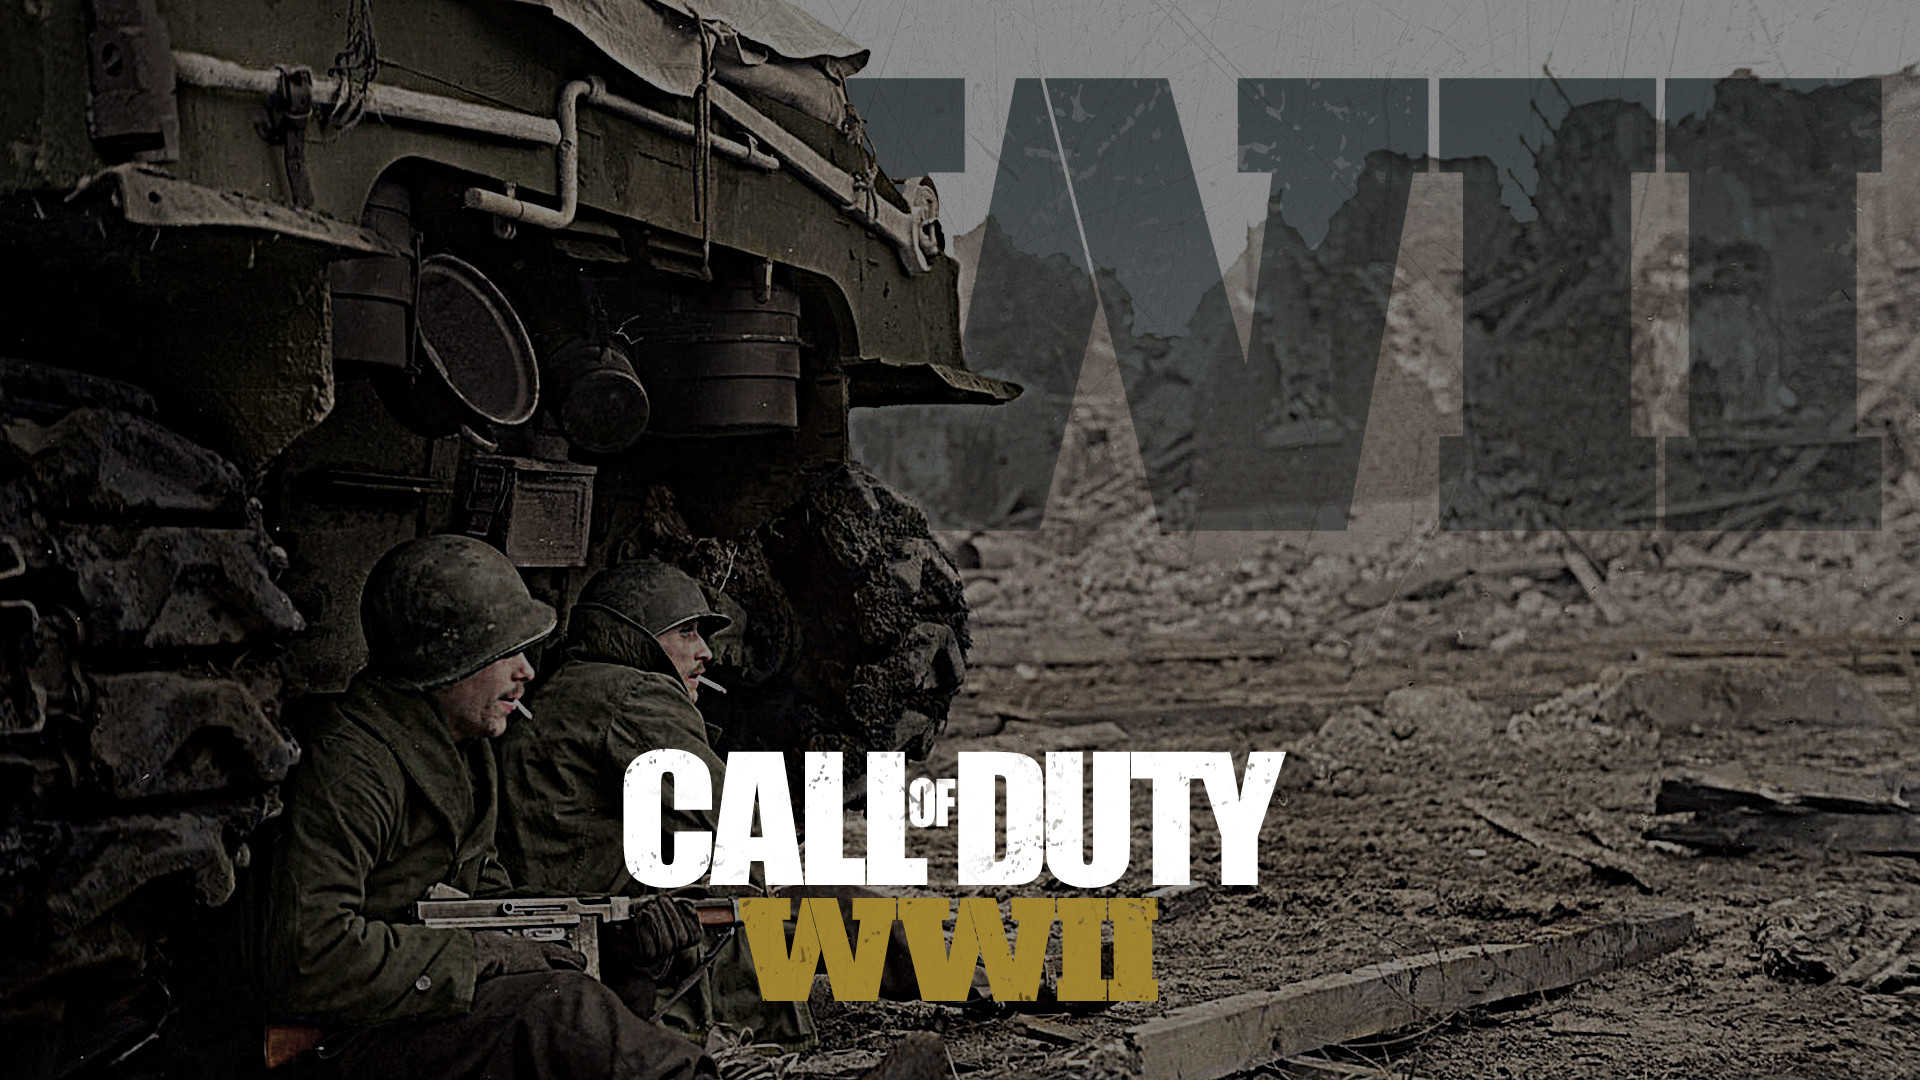 Ww2 wallpaper images 71 images - Call of duty ww2 desktop ...